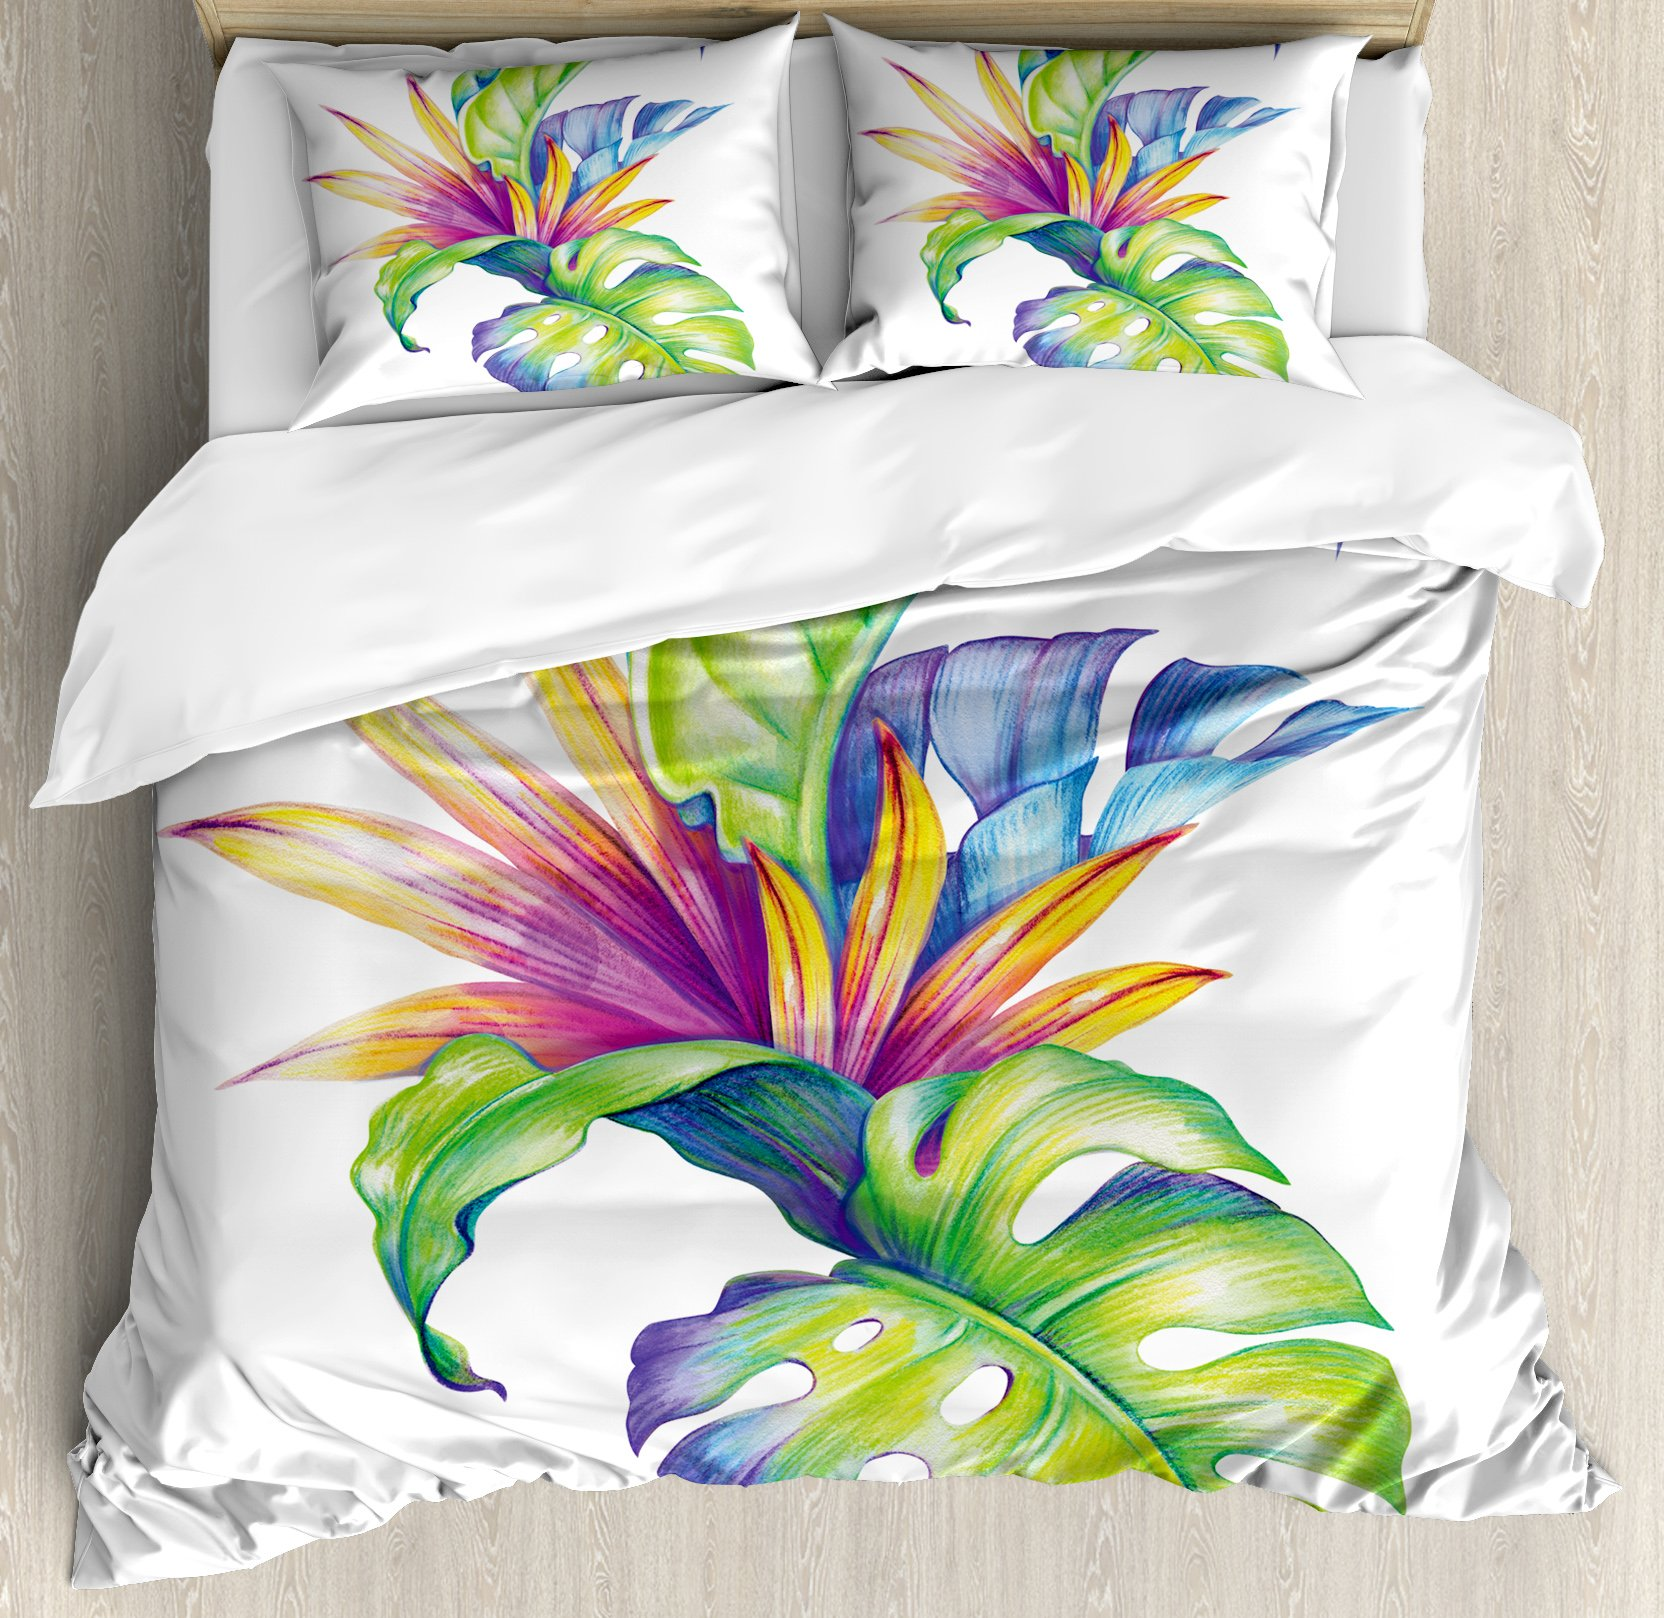 Ambesonne Plant Duvet Cover Set King Size by, Tropical Leaves and Monstera with Abstract Color Scheme Hawaiian Floral Elements, Decorative 3 Piece Bedding Set with 2 Pillow Shams, Multicolor